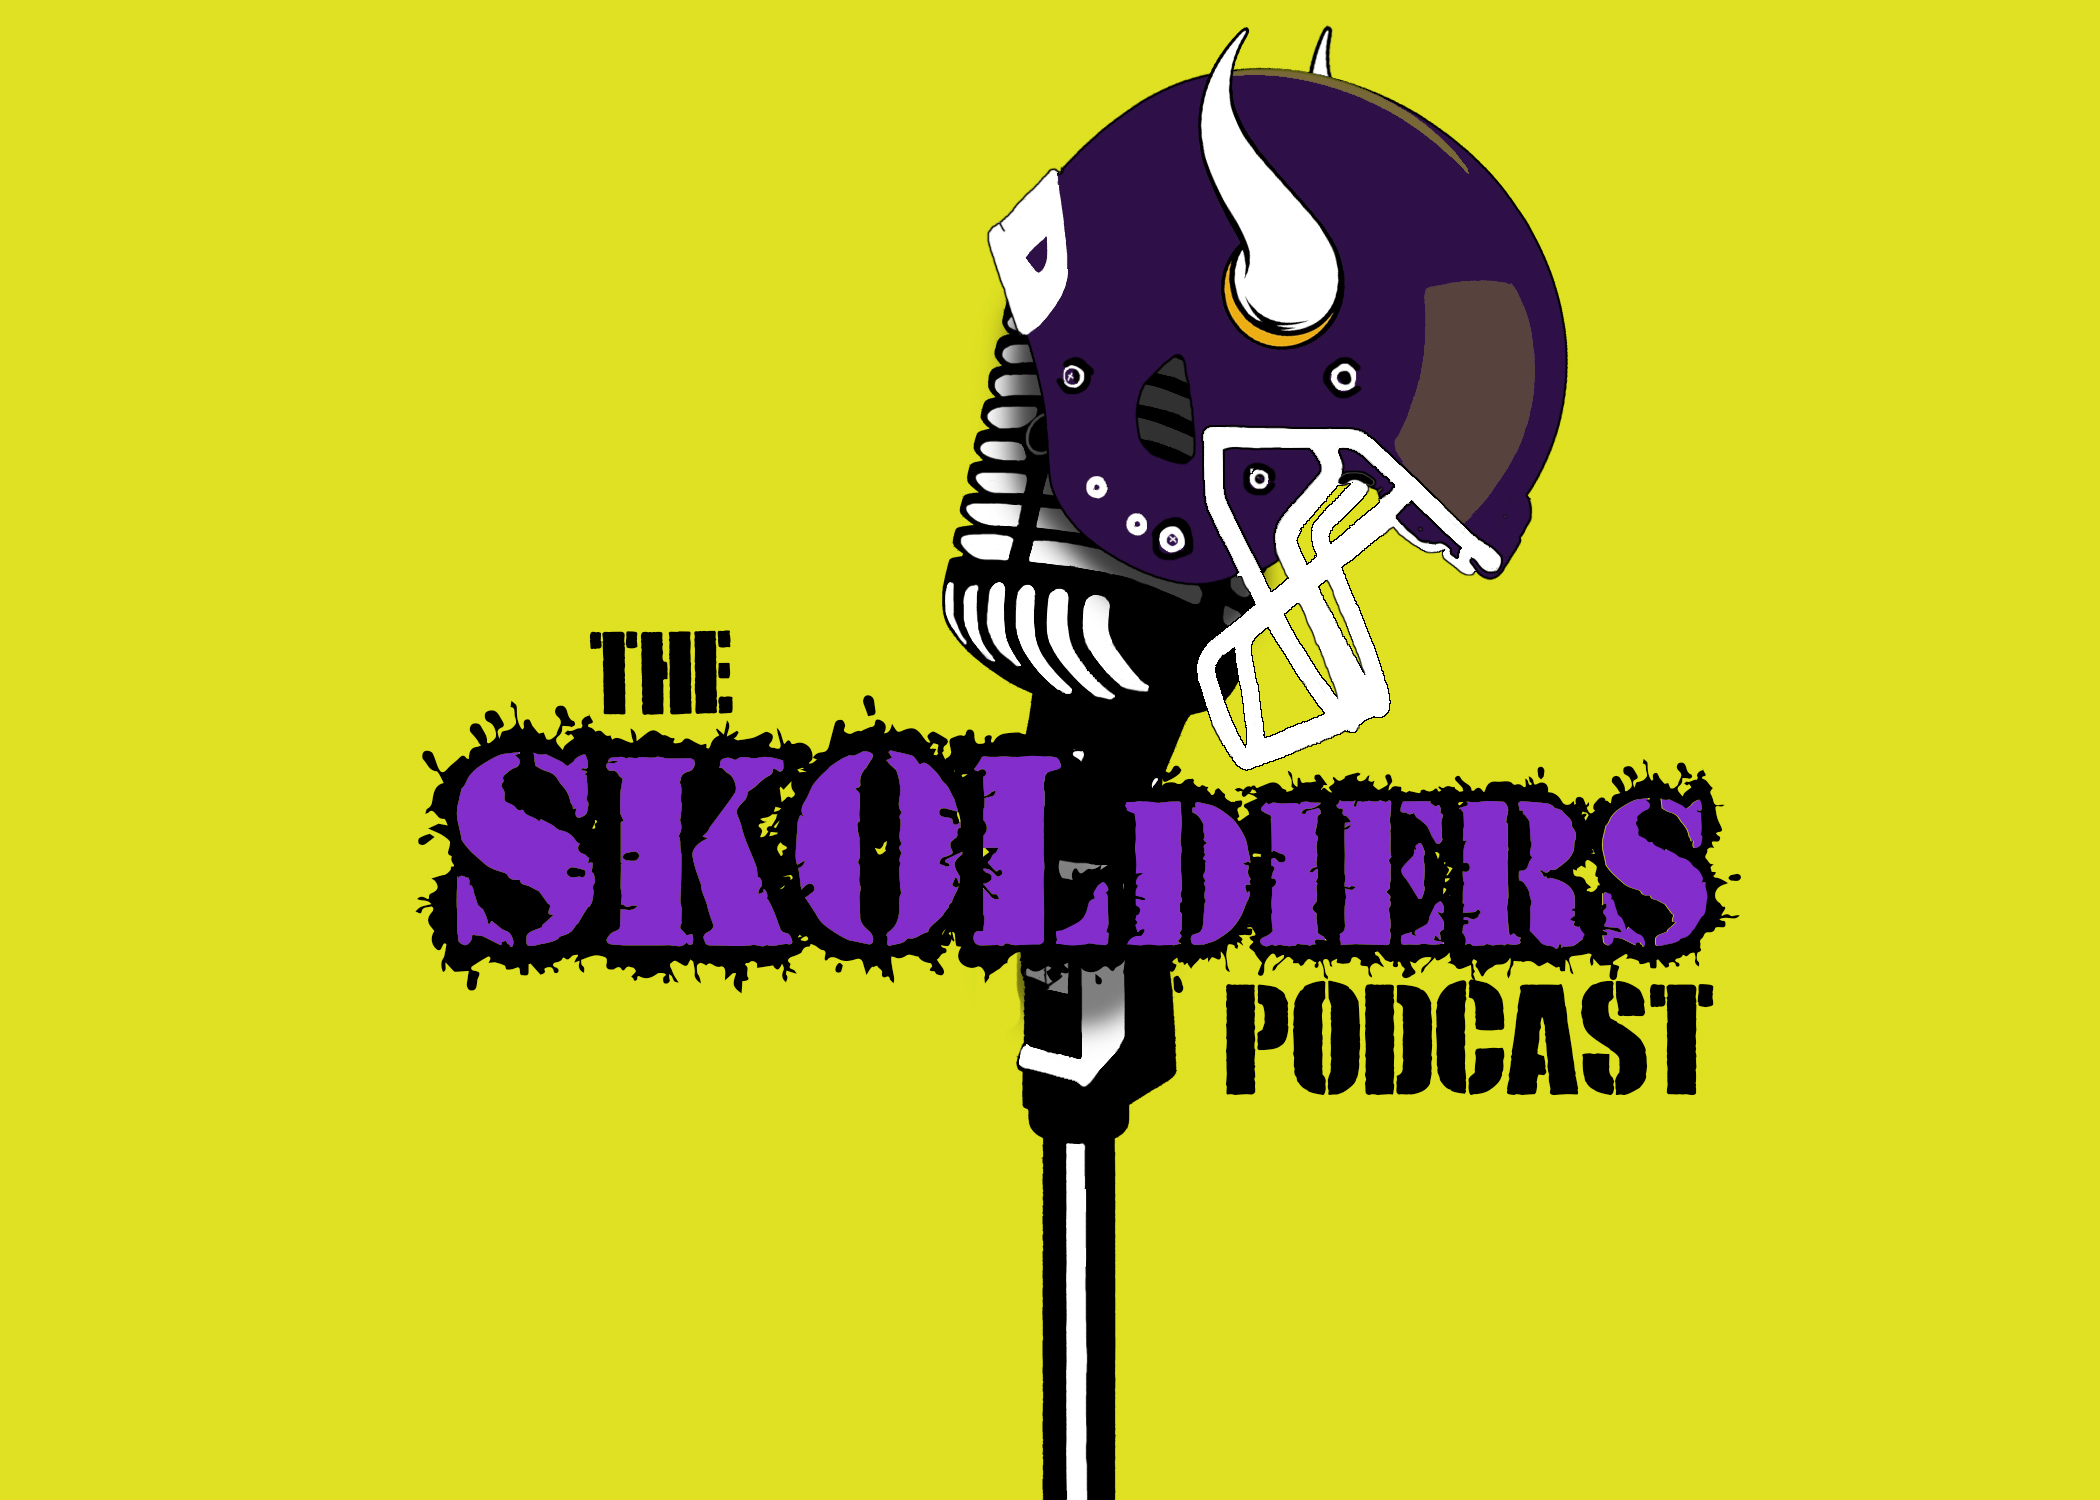 The SKOLdiers Podcast